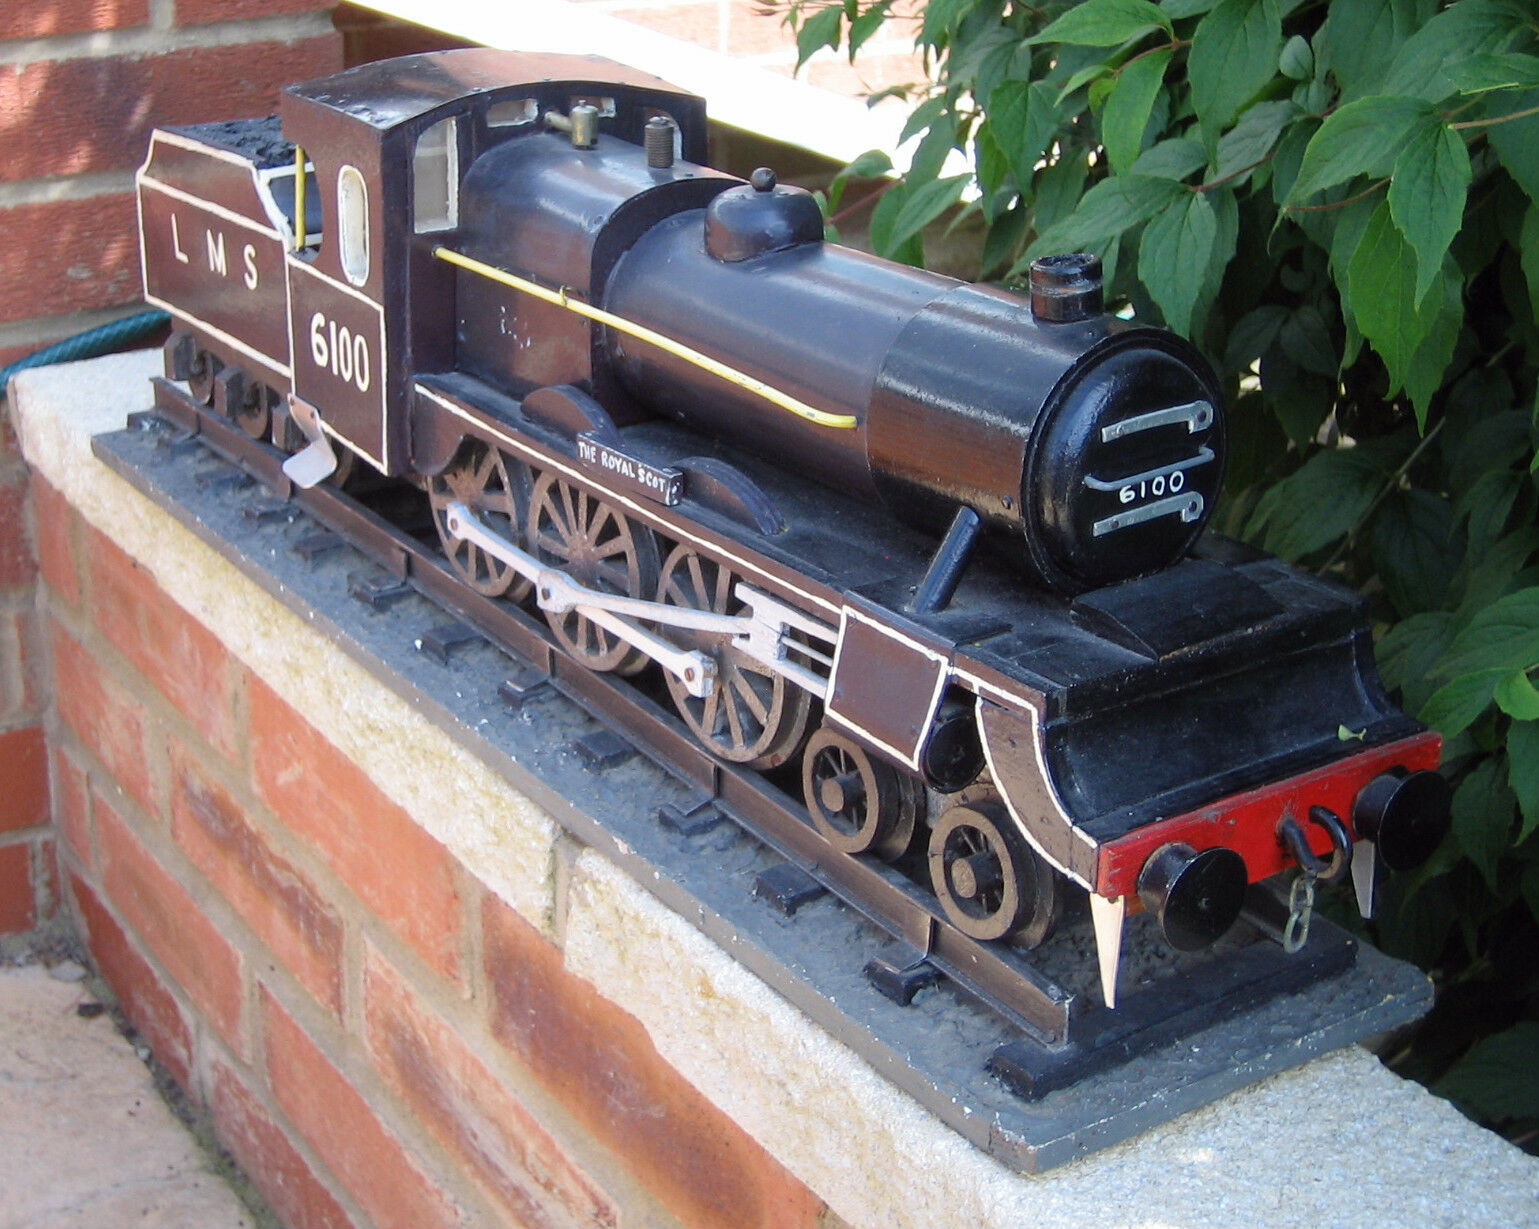 RARE V LARGE HAND MADE LOCOMOTIVE THE ROYAL SCOTT L M S 6100- BUTLINS SKEGNESS